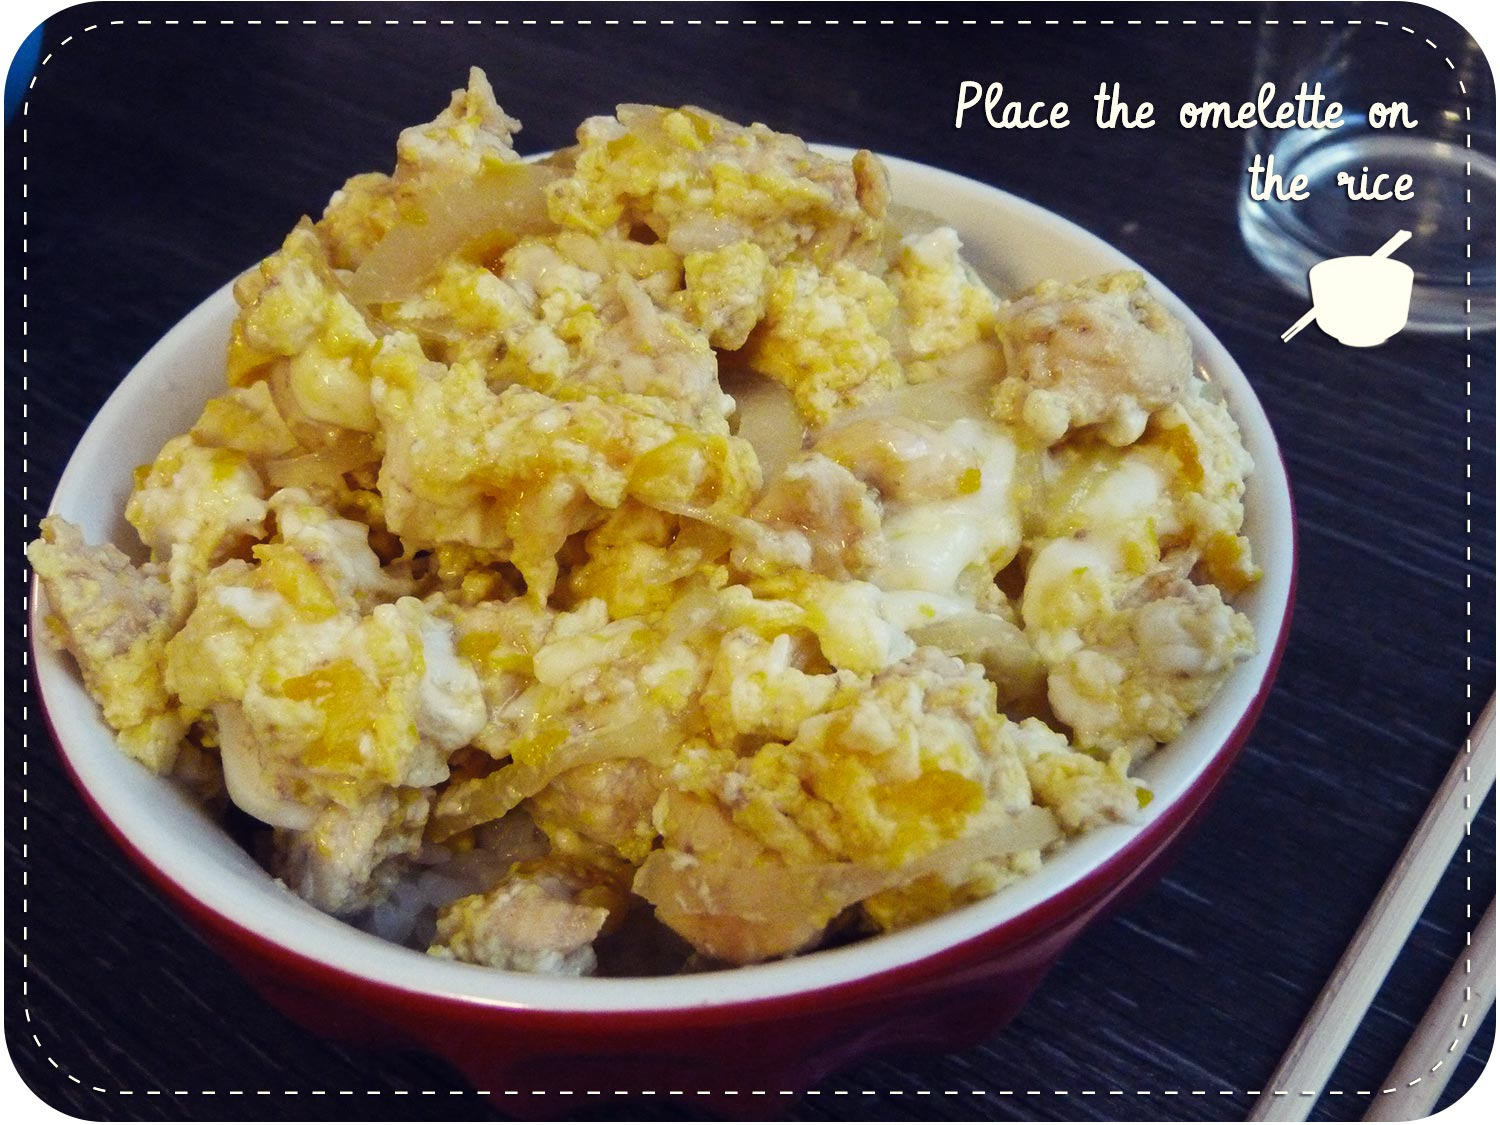 Cute And Wild • Fashion & Beauty Blog: Recipe • Oyakodon